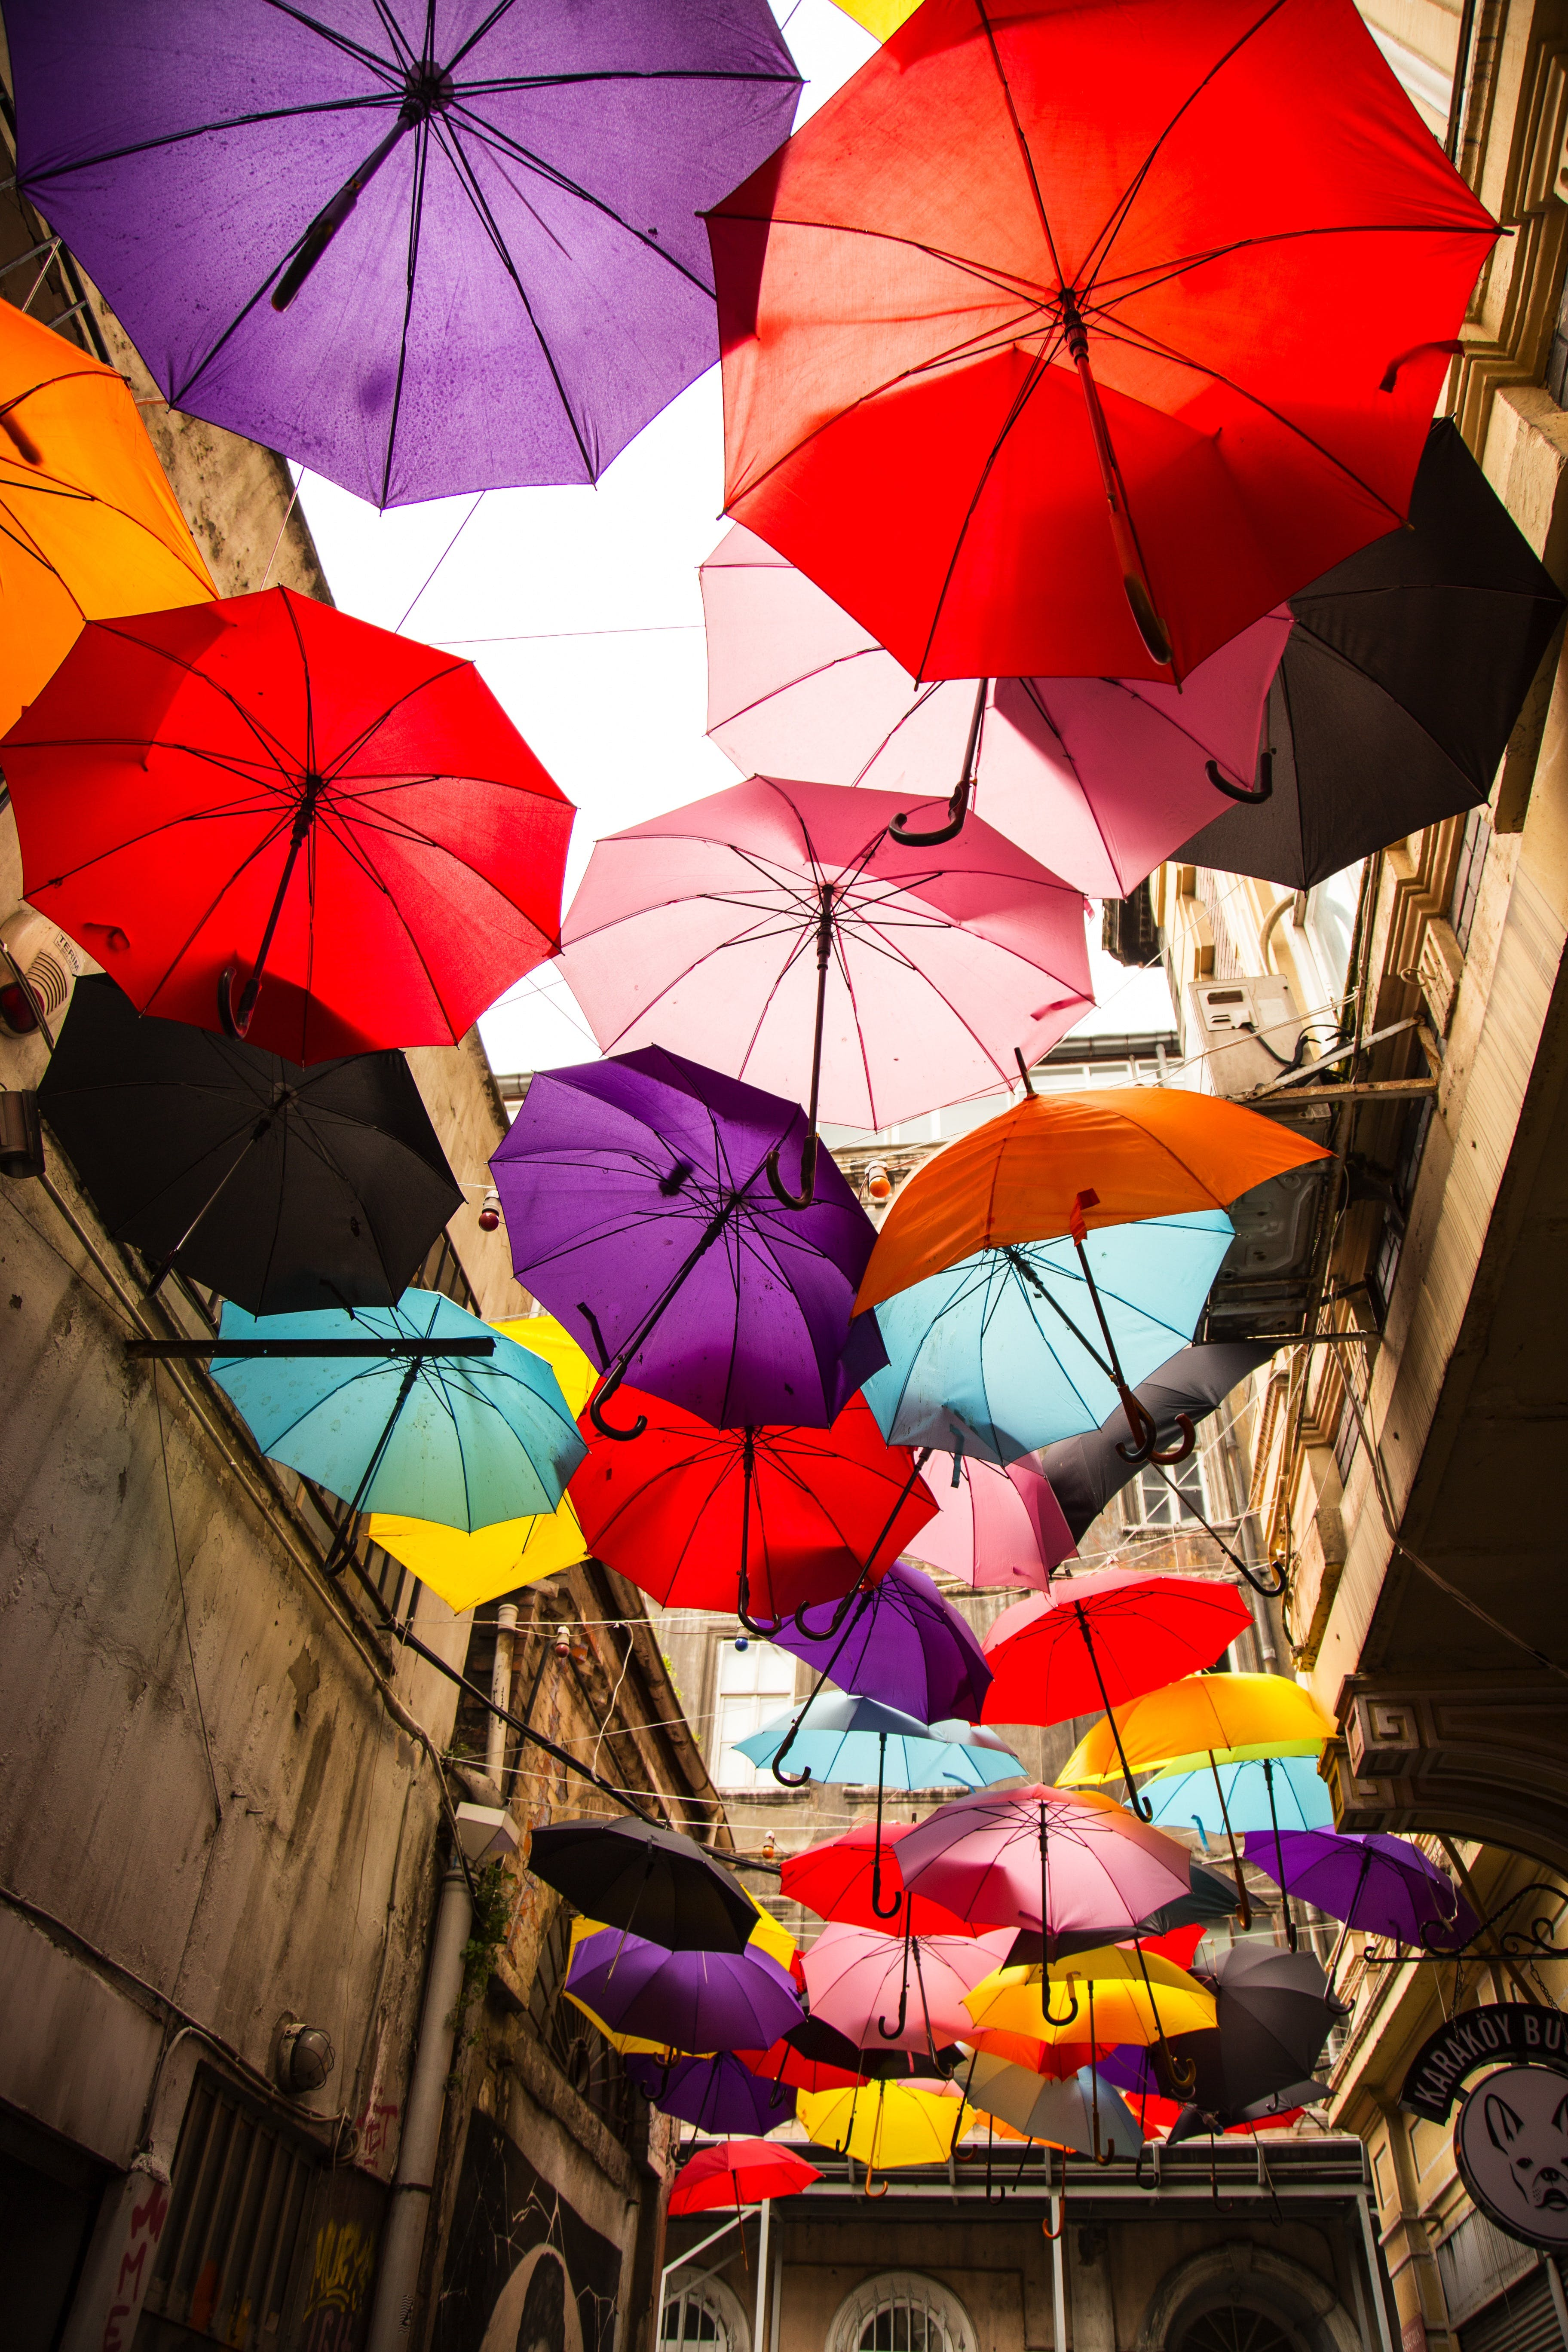 Free stock photo of colorful, happiness, umbrella, outdoor